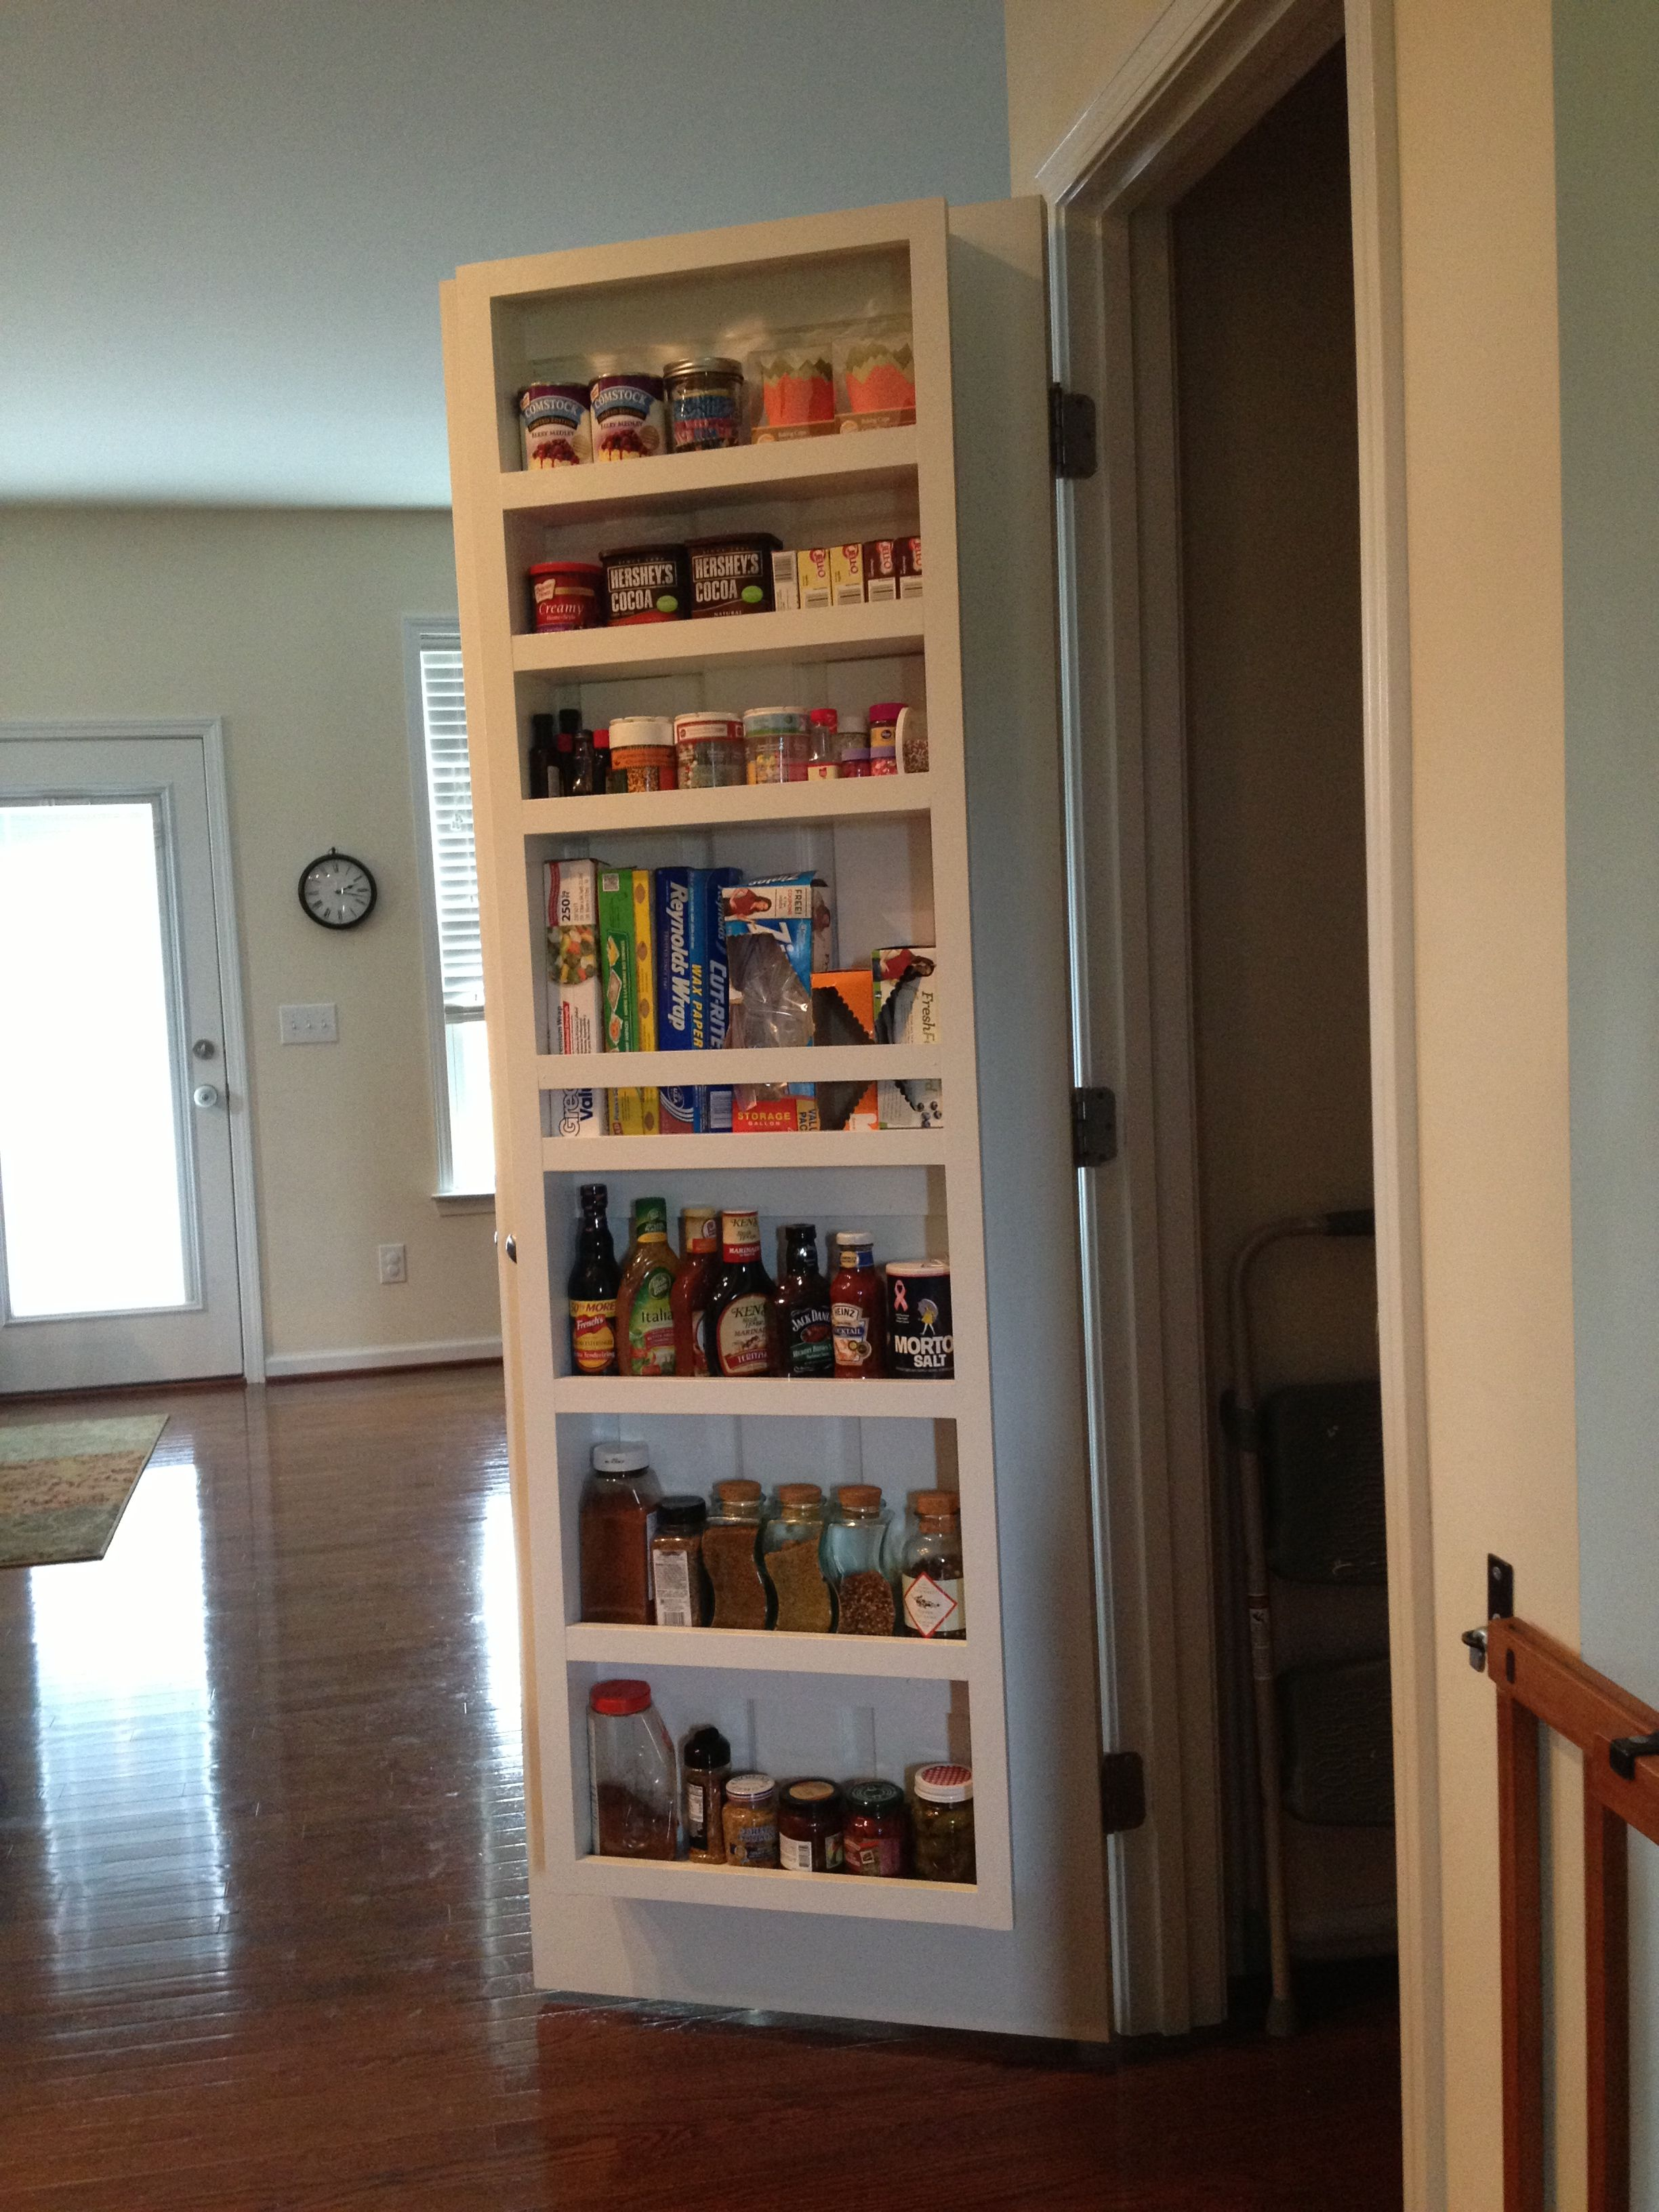 Kitchen Shelves Instead Of Cabinets If Pantry Door Opened Out Instead Of In It Would Be Much